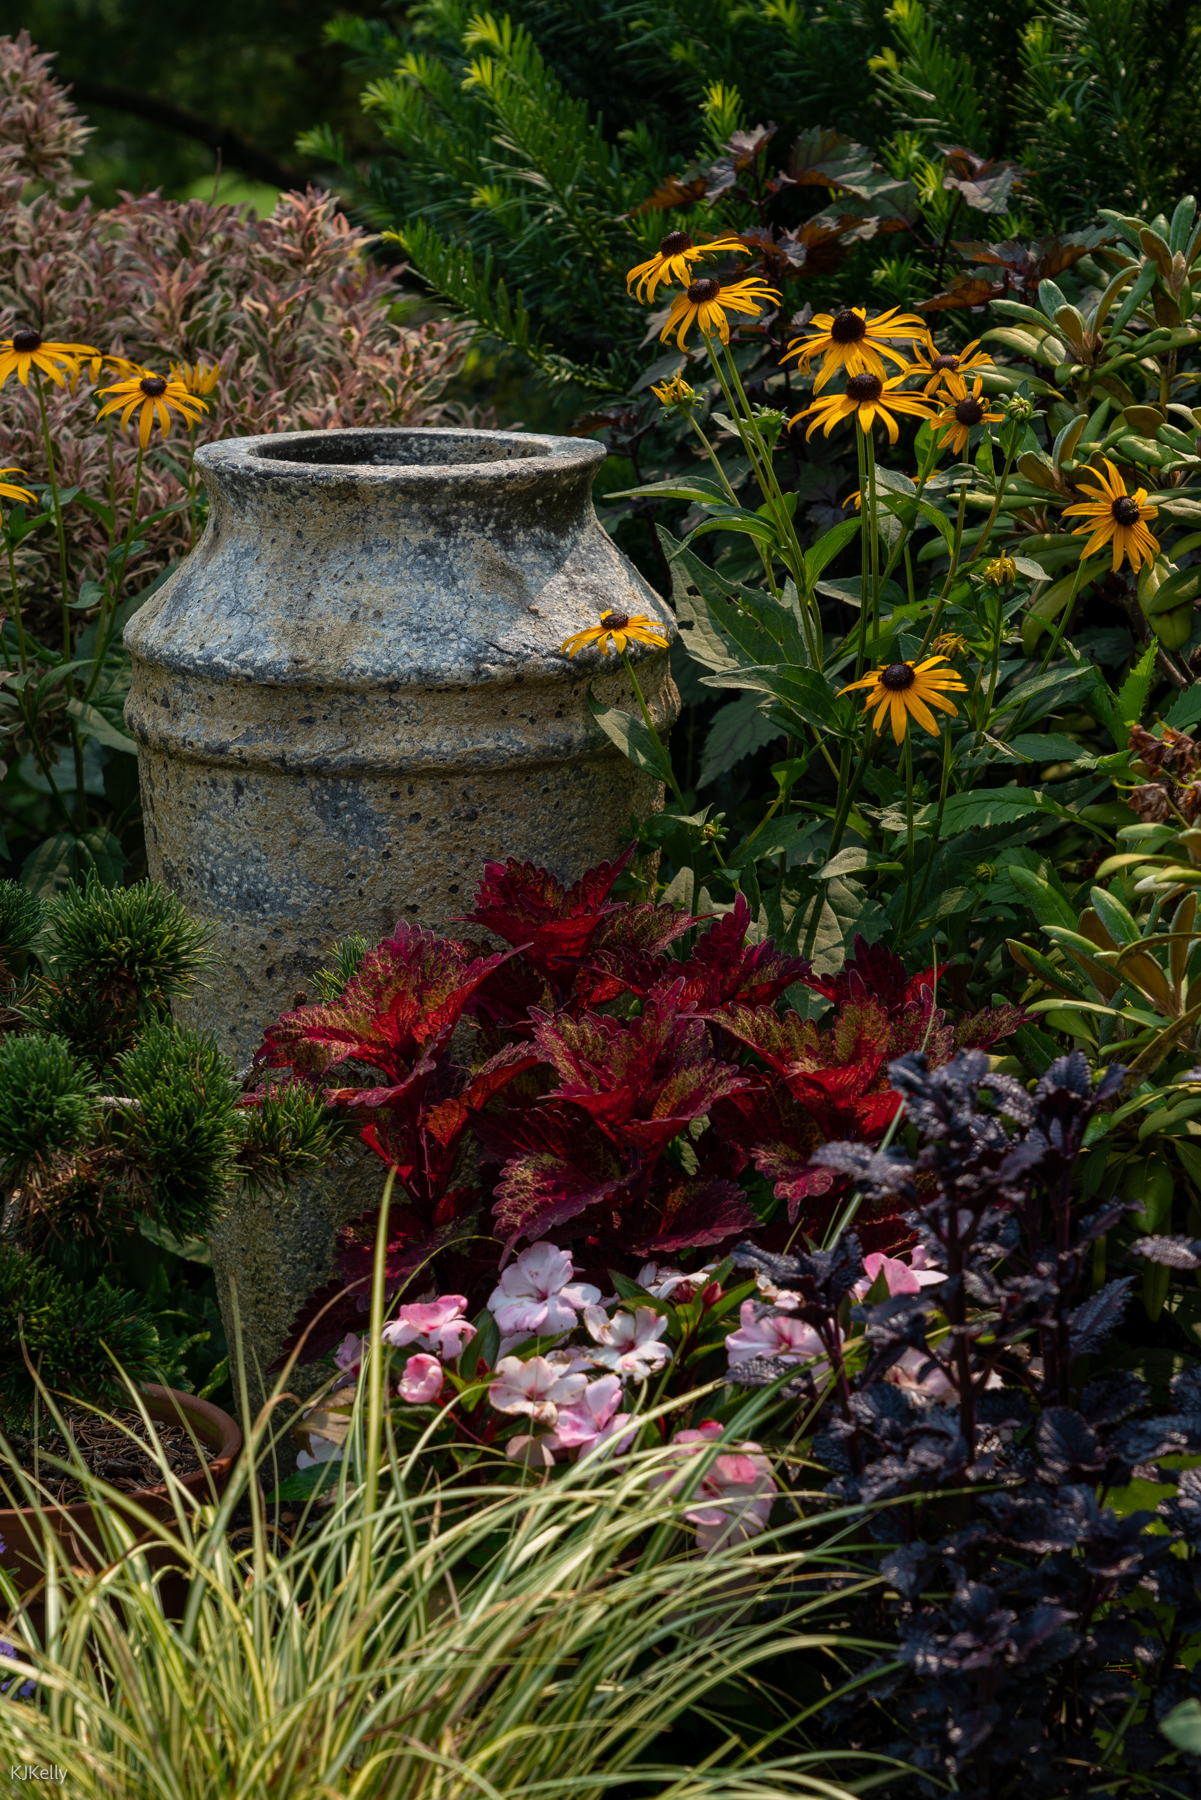 Cone flowers and foliage plants next to large containers